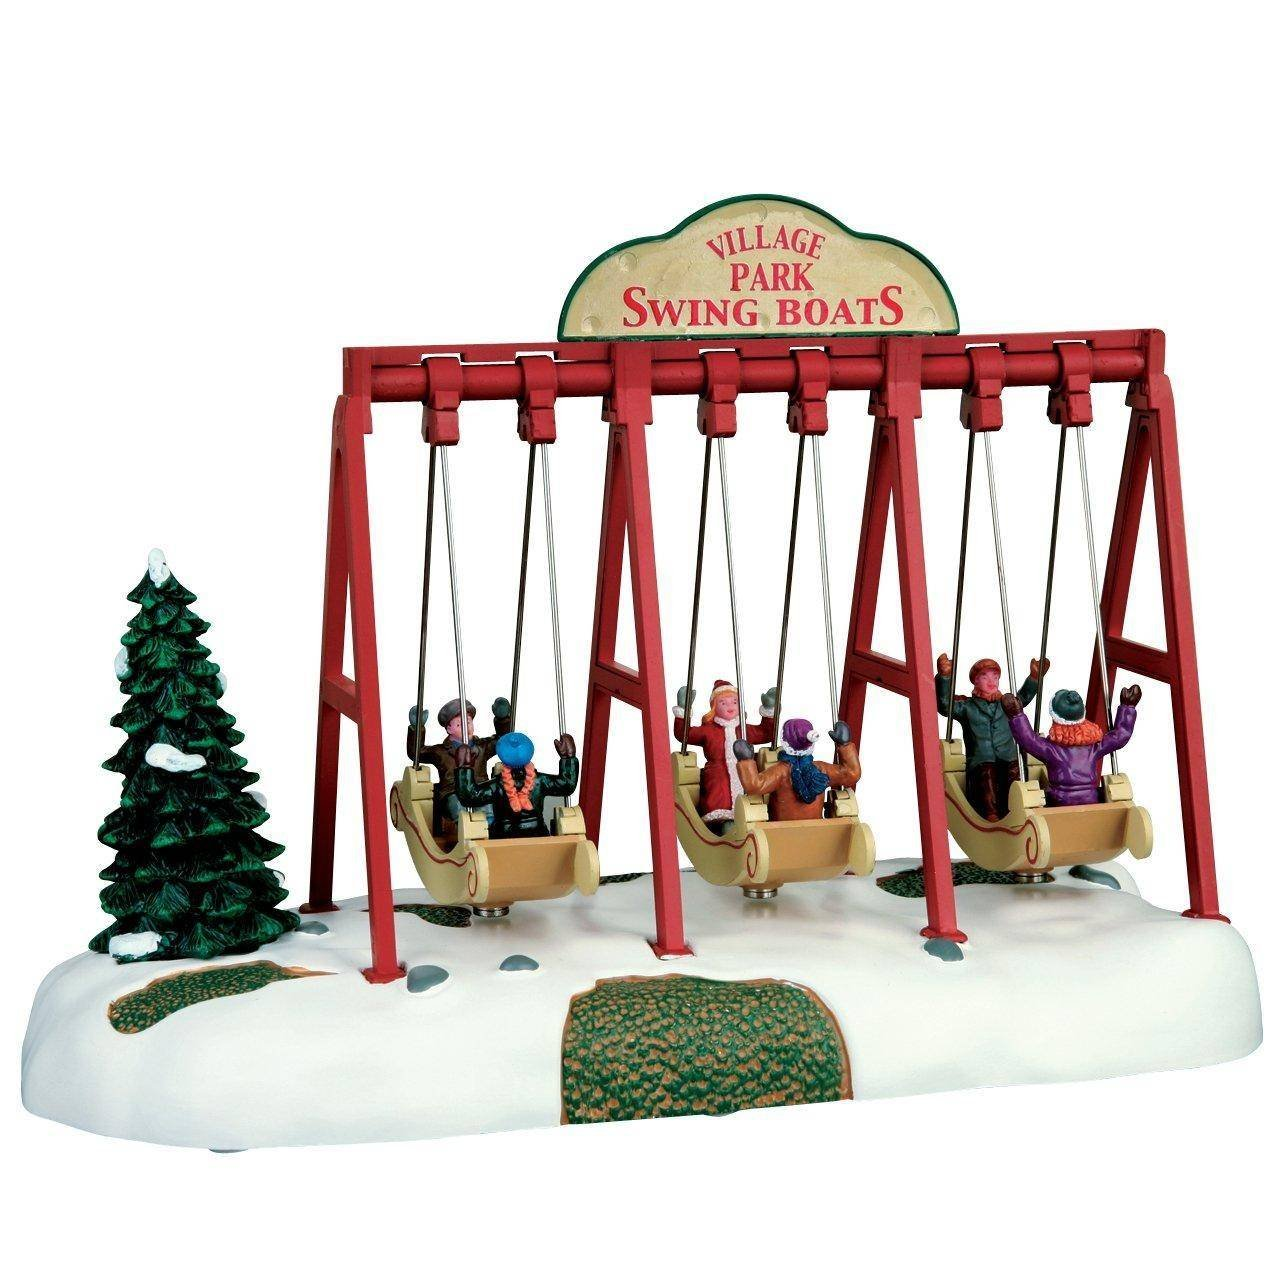 Lemax - Swing Boats - Schaukel - Animiertes Accessoire - 4,5V - Weihnachtswelt